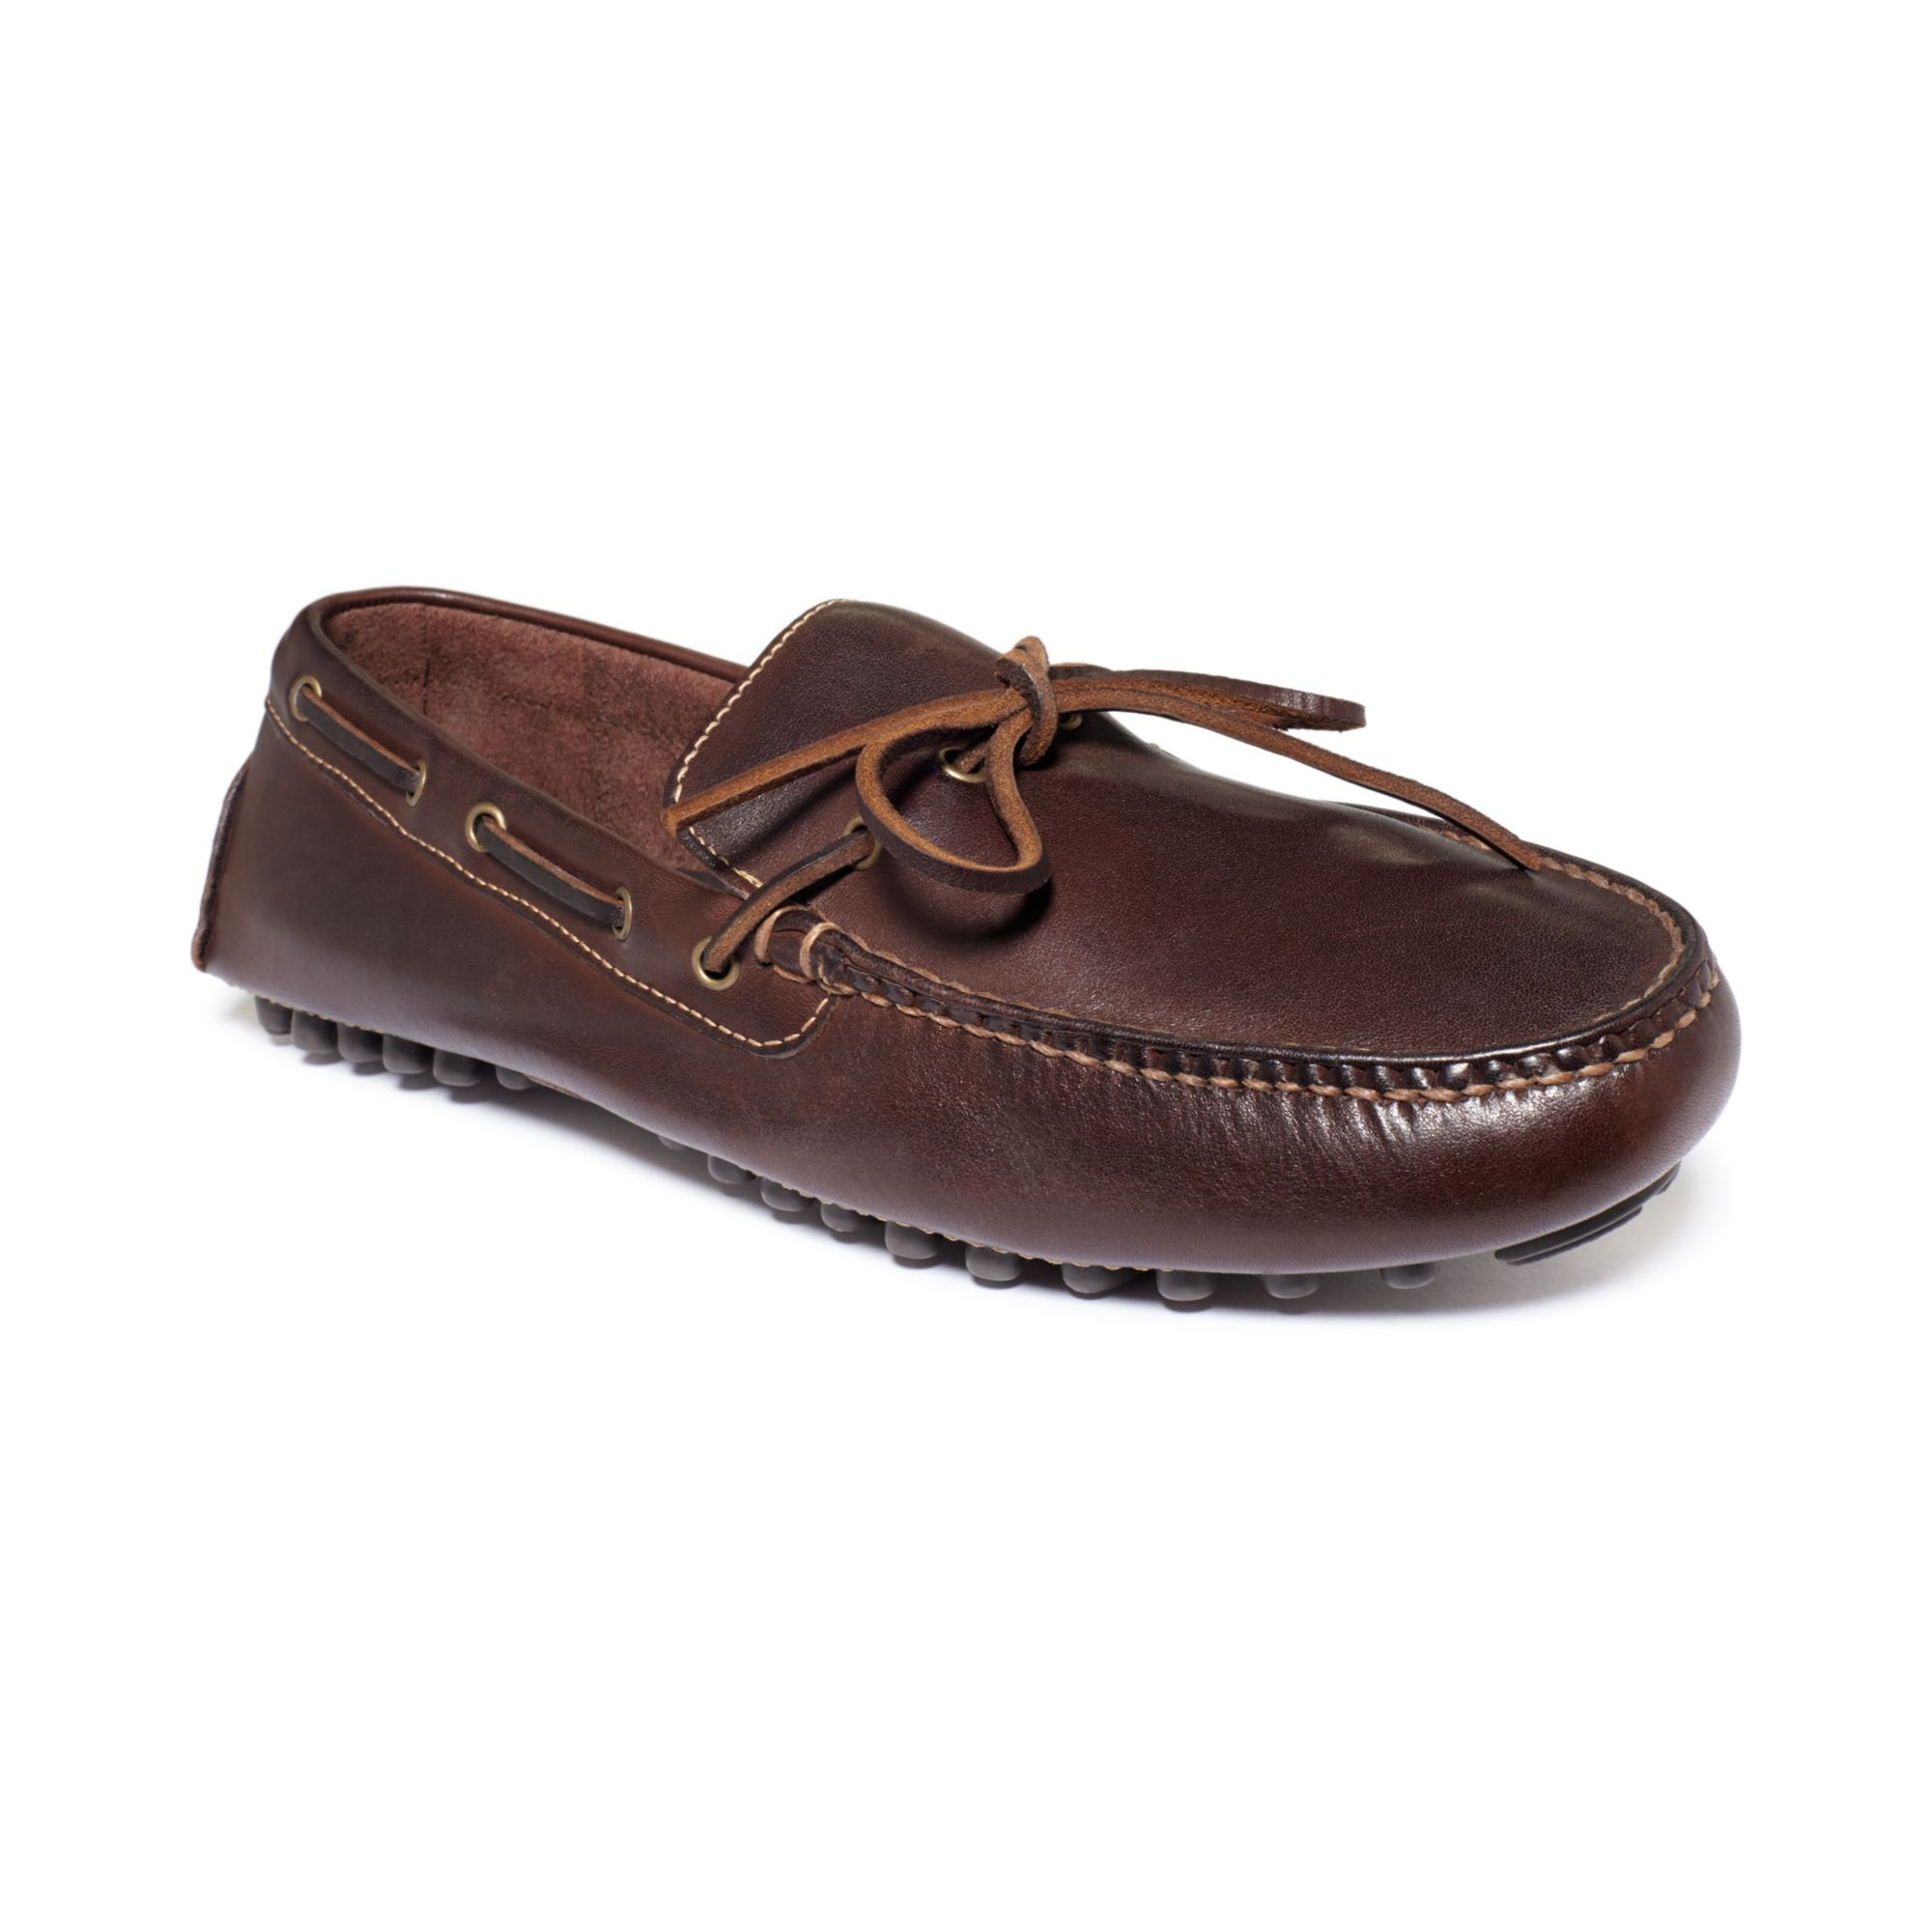 cole haan air grant loafers in brown for men tmoro lyst. Black Bedroom Furniture Sets. Home Design Ideas